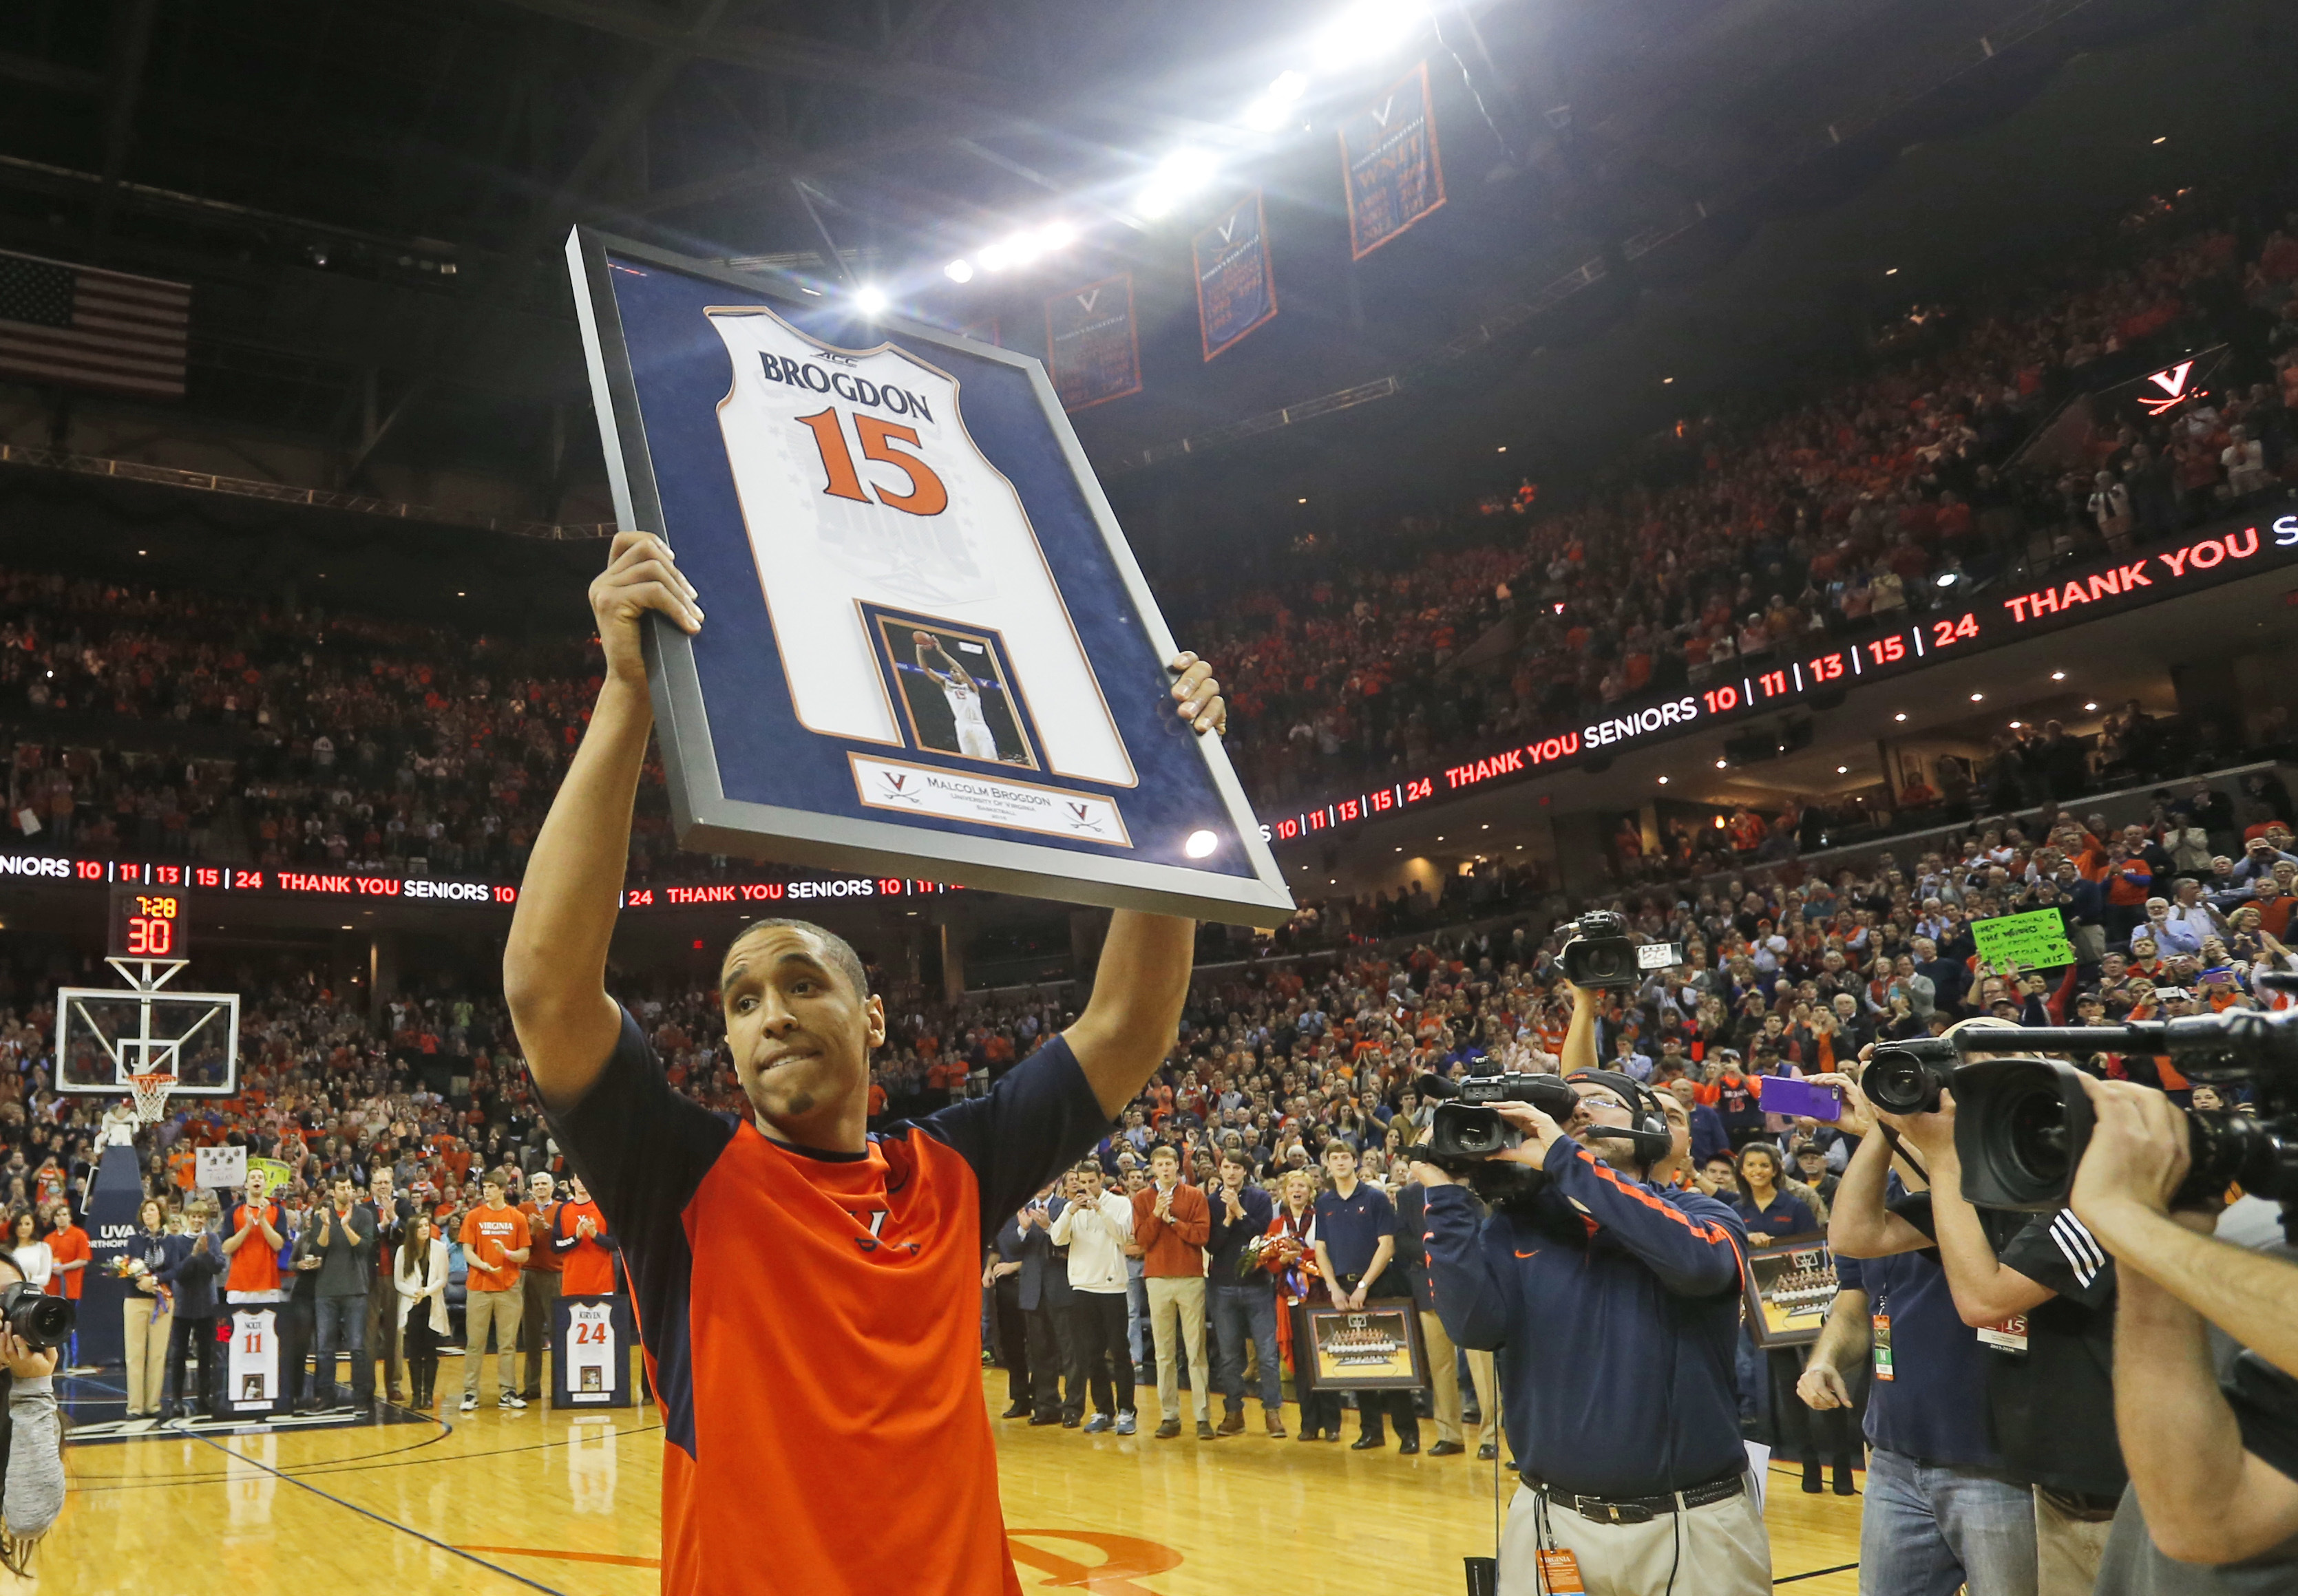 Virginia guard Malcolm Brogdon (15) holds a commemorative jersey as he is introduced prior to the team's NCAA college basketball game against Louisville in Charlottesville, Va., Saturday, March 5, 2016. Brogdon is a graduating senior. (AP Photo/Steve Helb